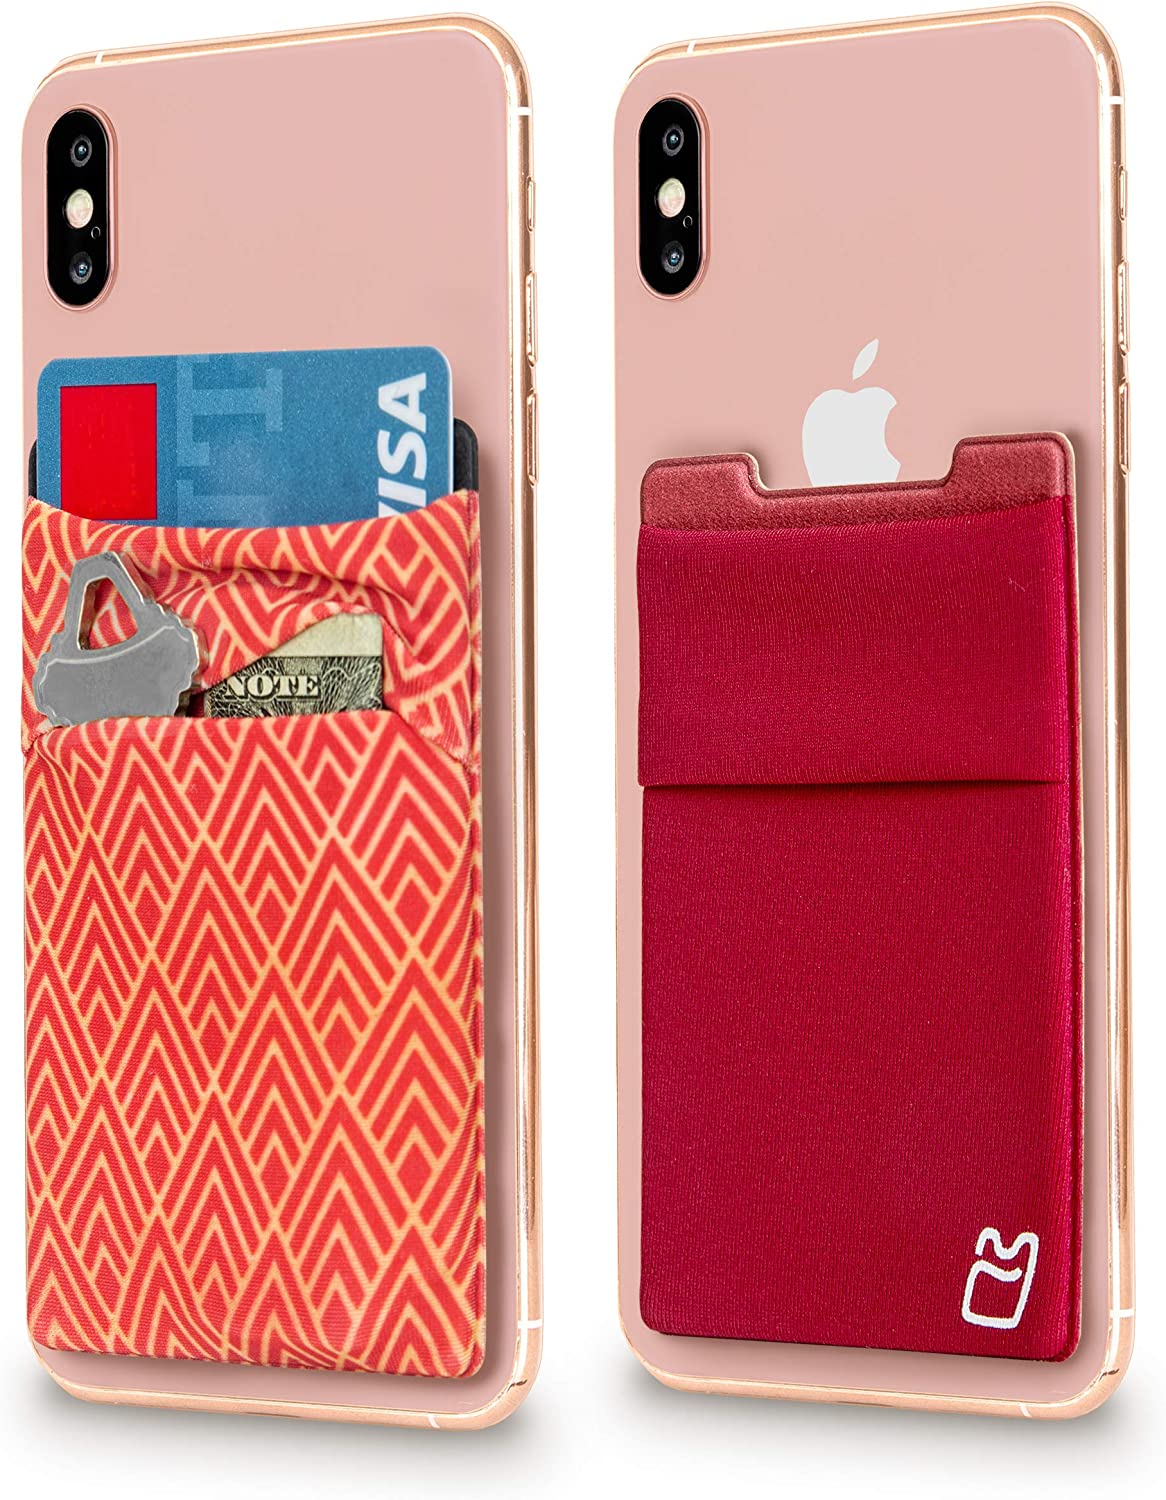 (Two) Stretchy Cell Phone Stick on Wallet Card Holder Phone Pocket for iPhone, Android and All Smartphones - Burgundy